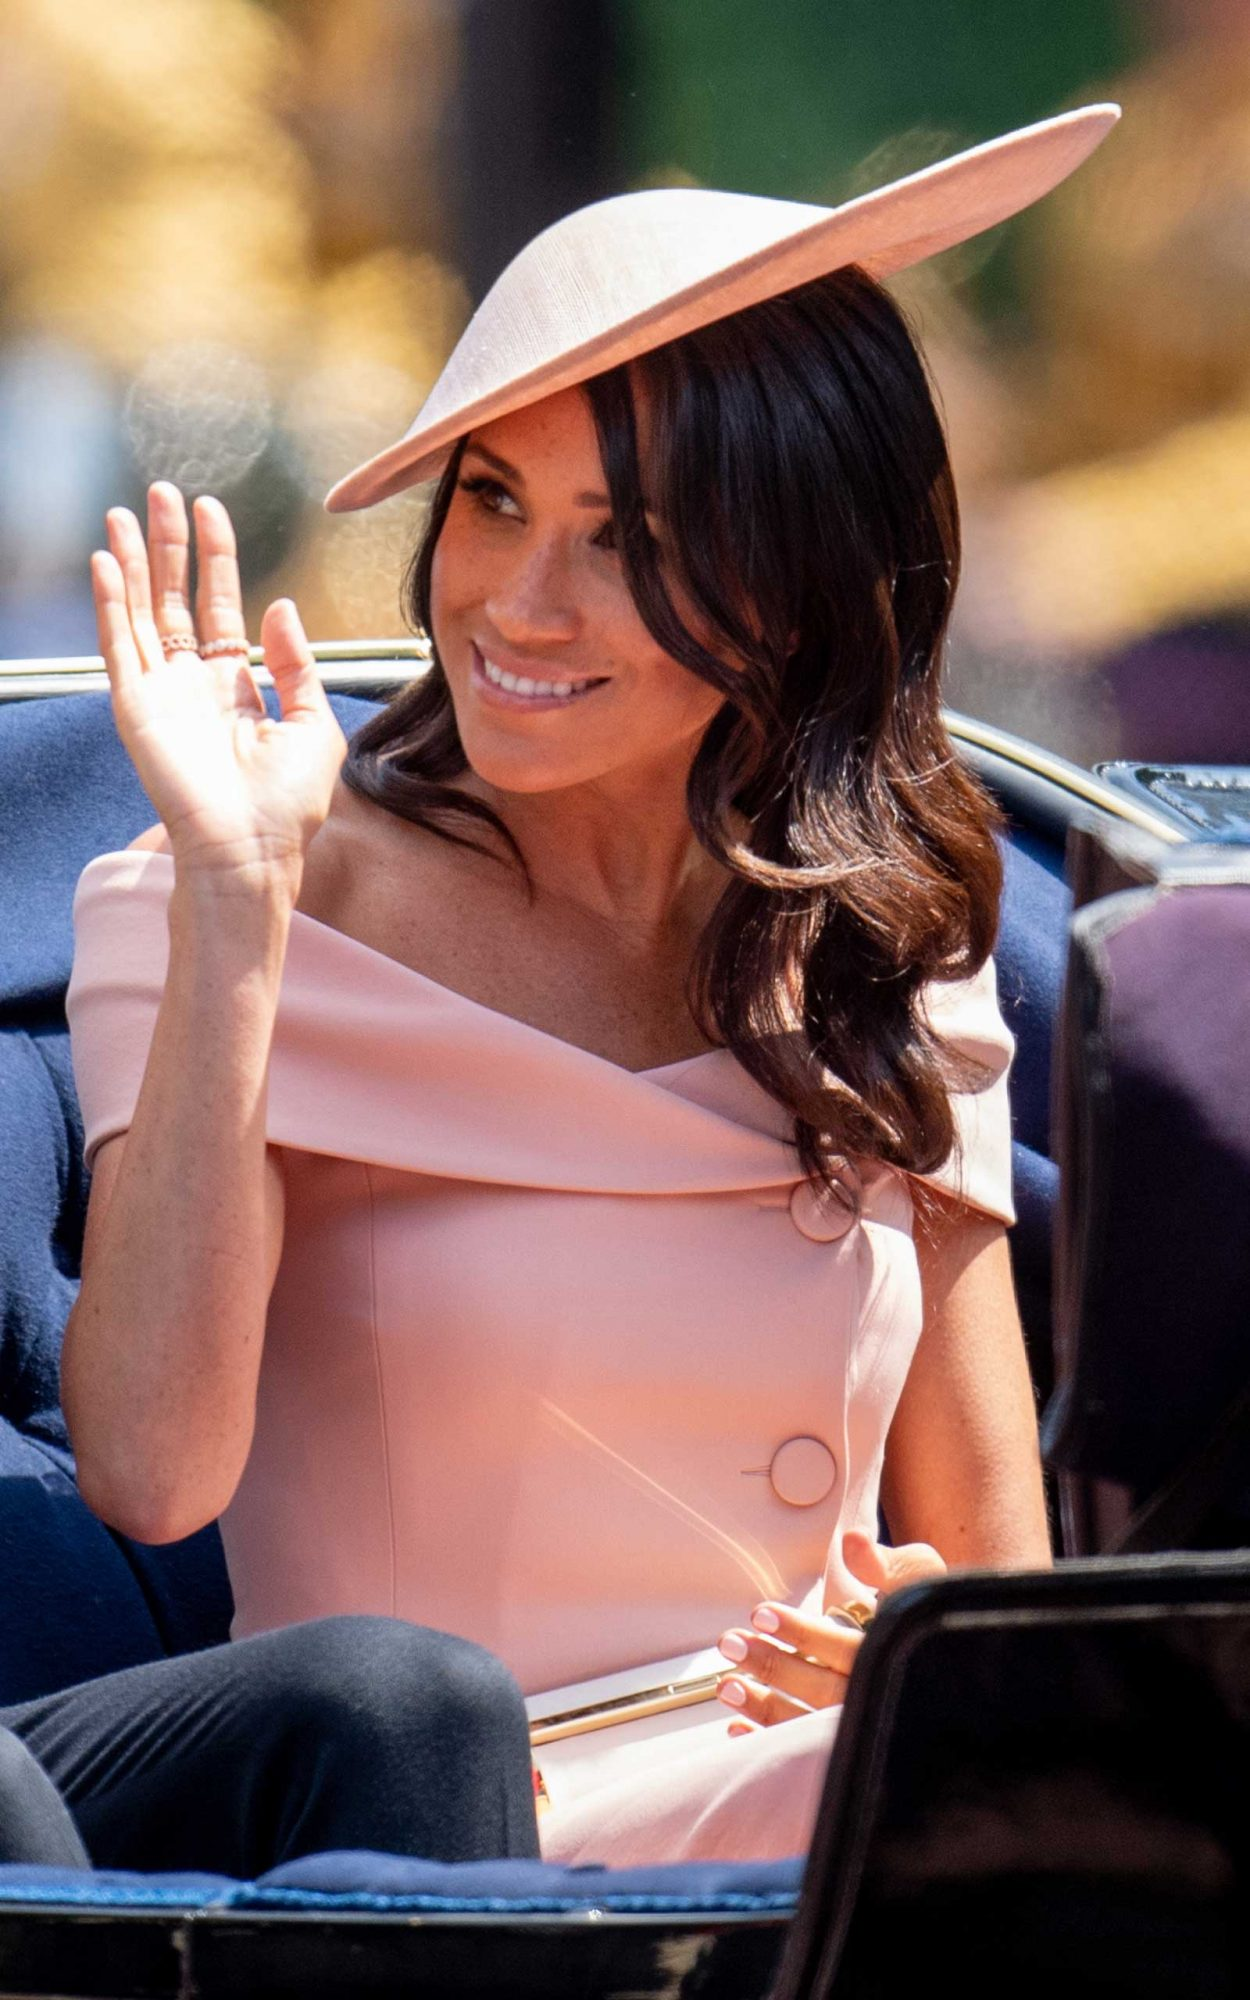 Meghan, Duchess of Sussex during Trooping The Colour 2018 on June 9, 2018 in London, England.